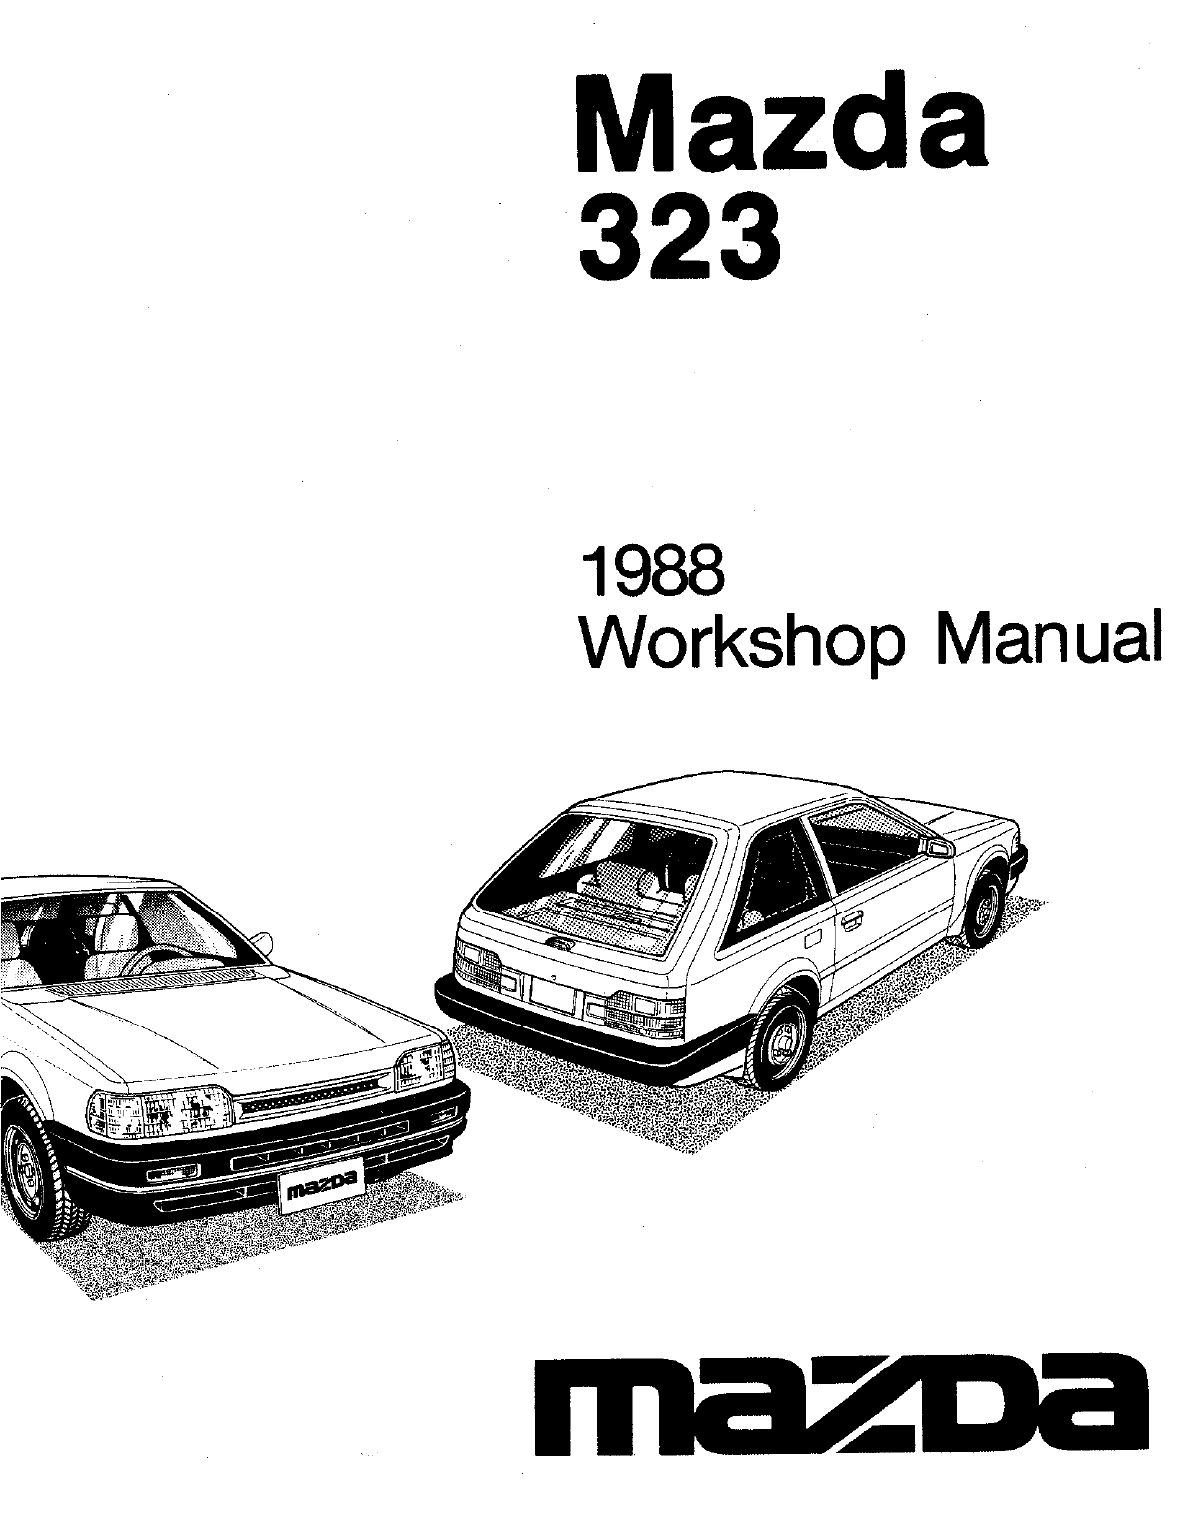 Mazda 323 1988 Workshop Manual PDF